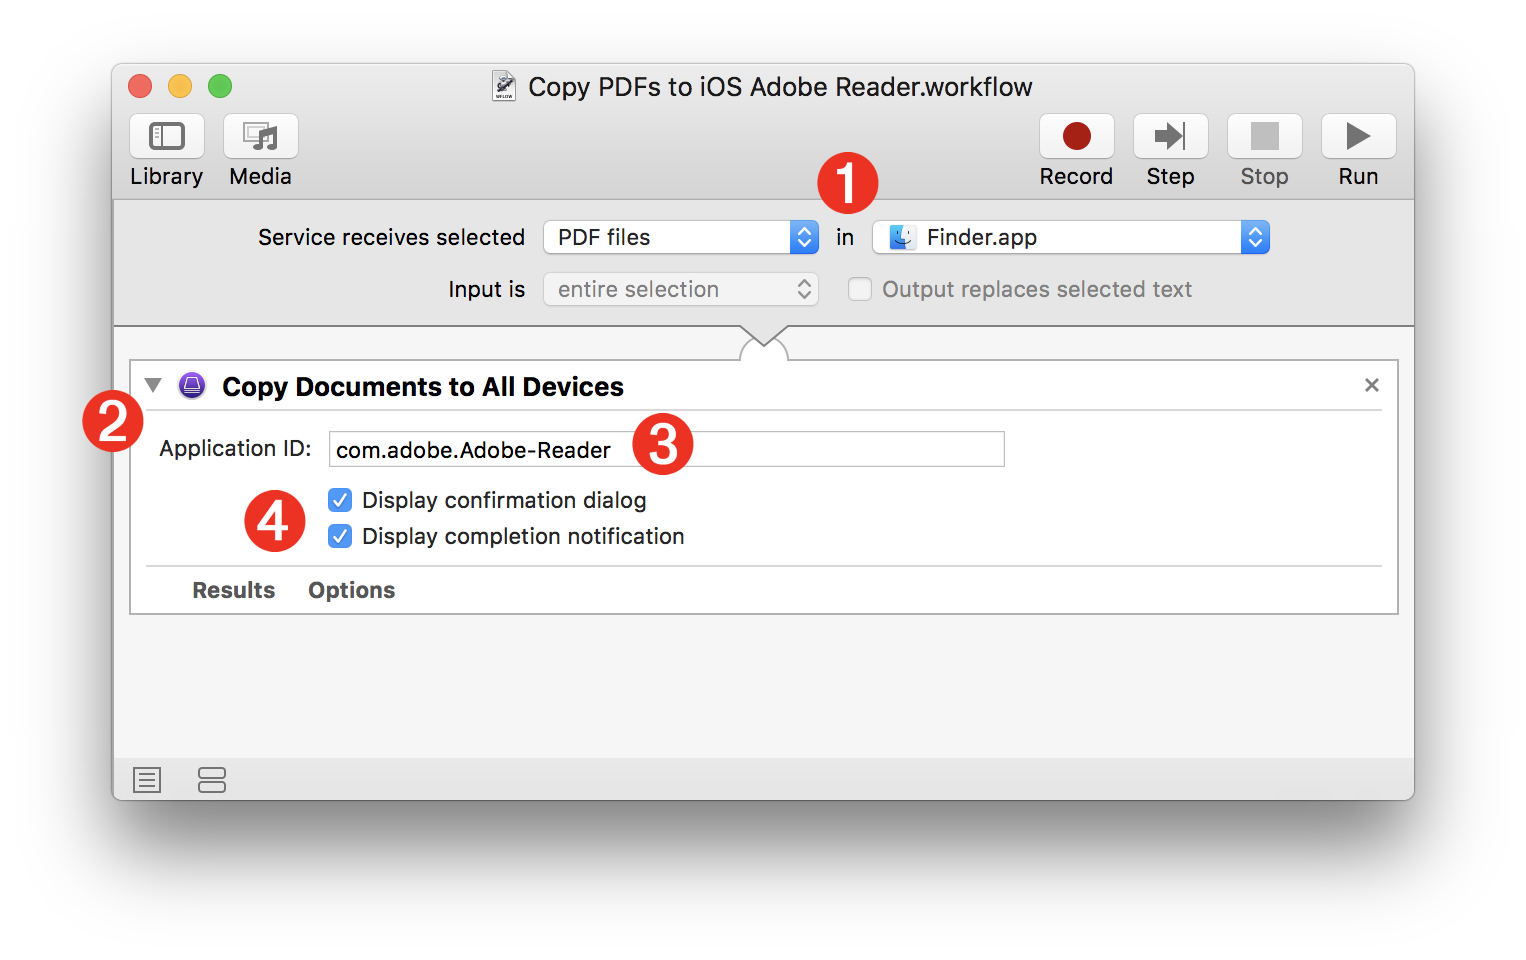 Apple Configurator & Automator: Copy Documents